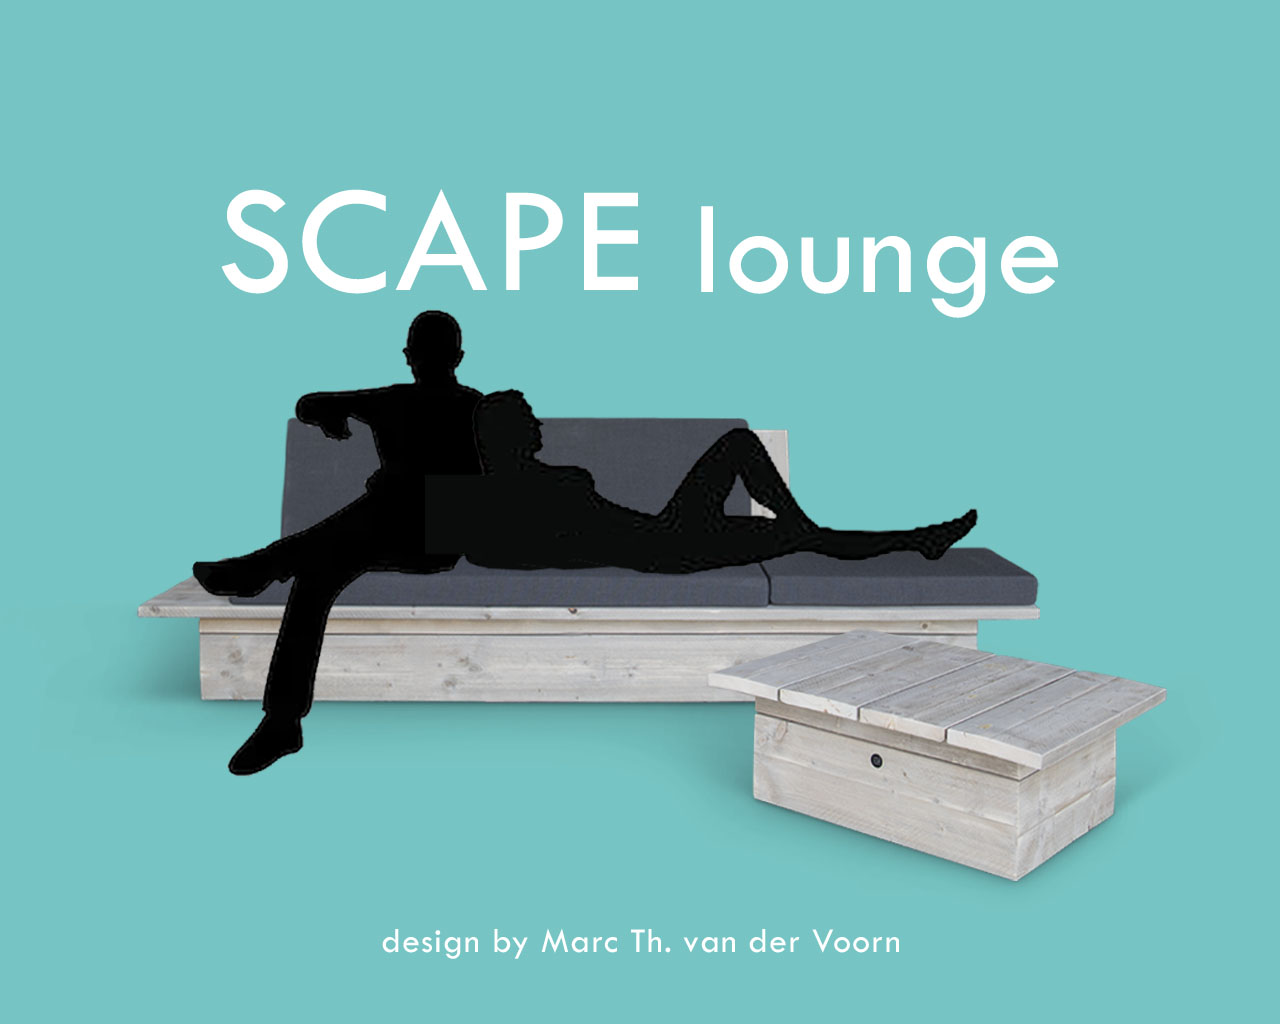 [104] SCAPE lounge bank